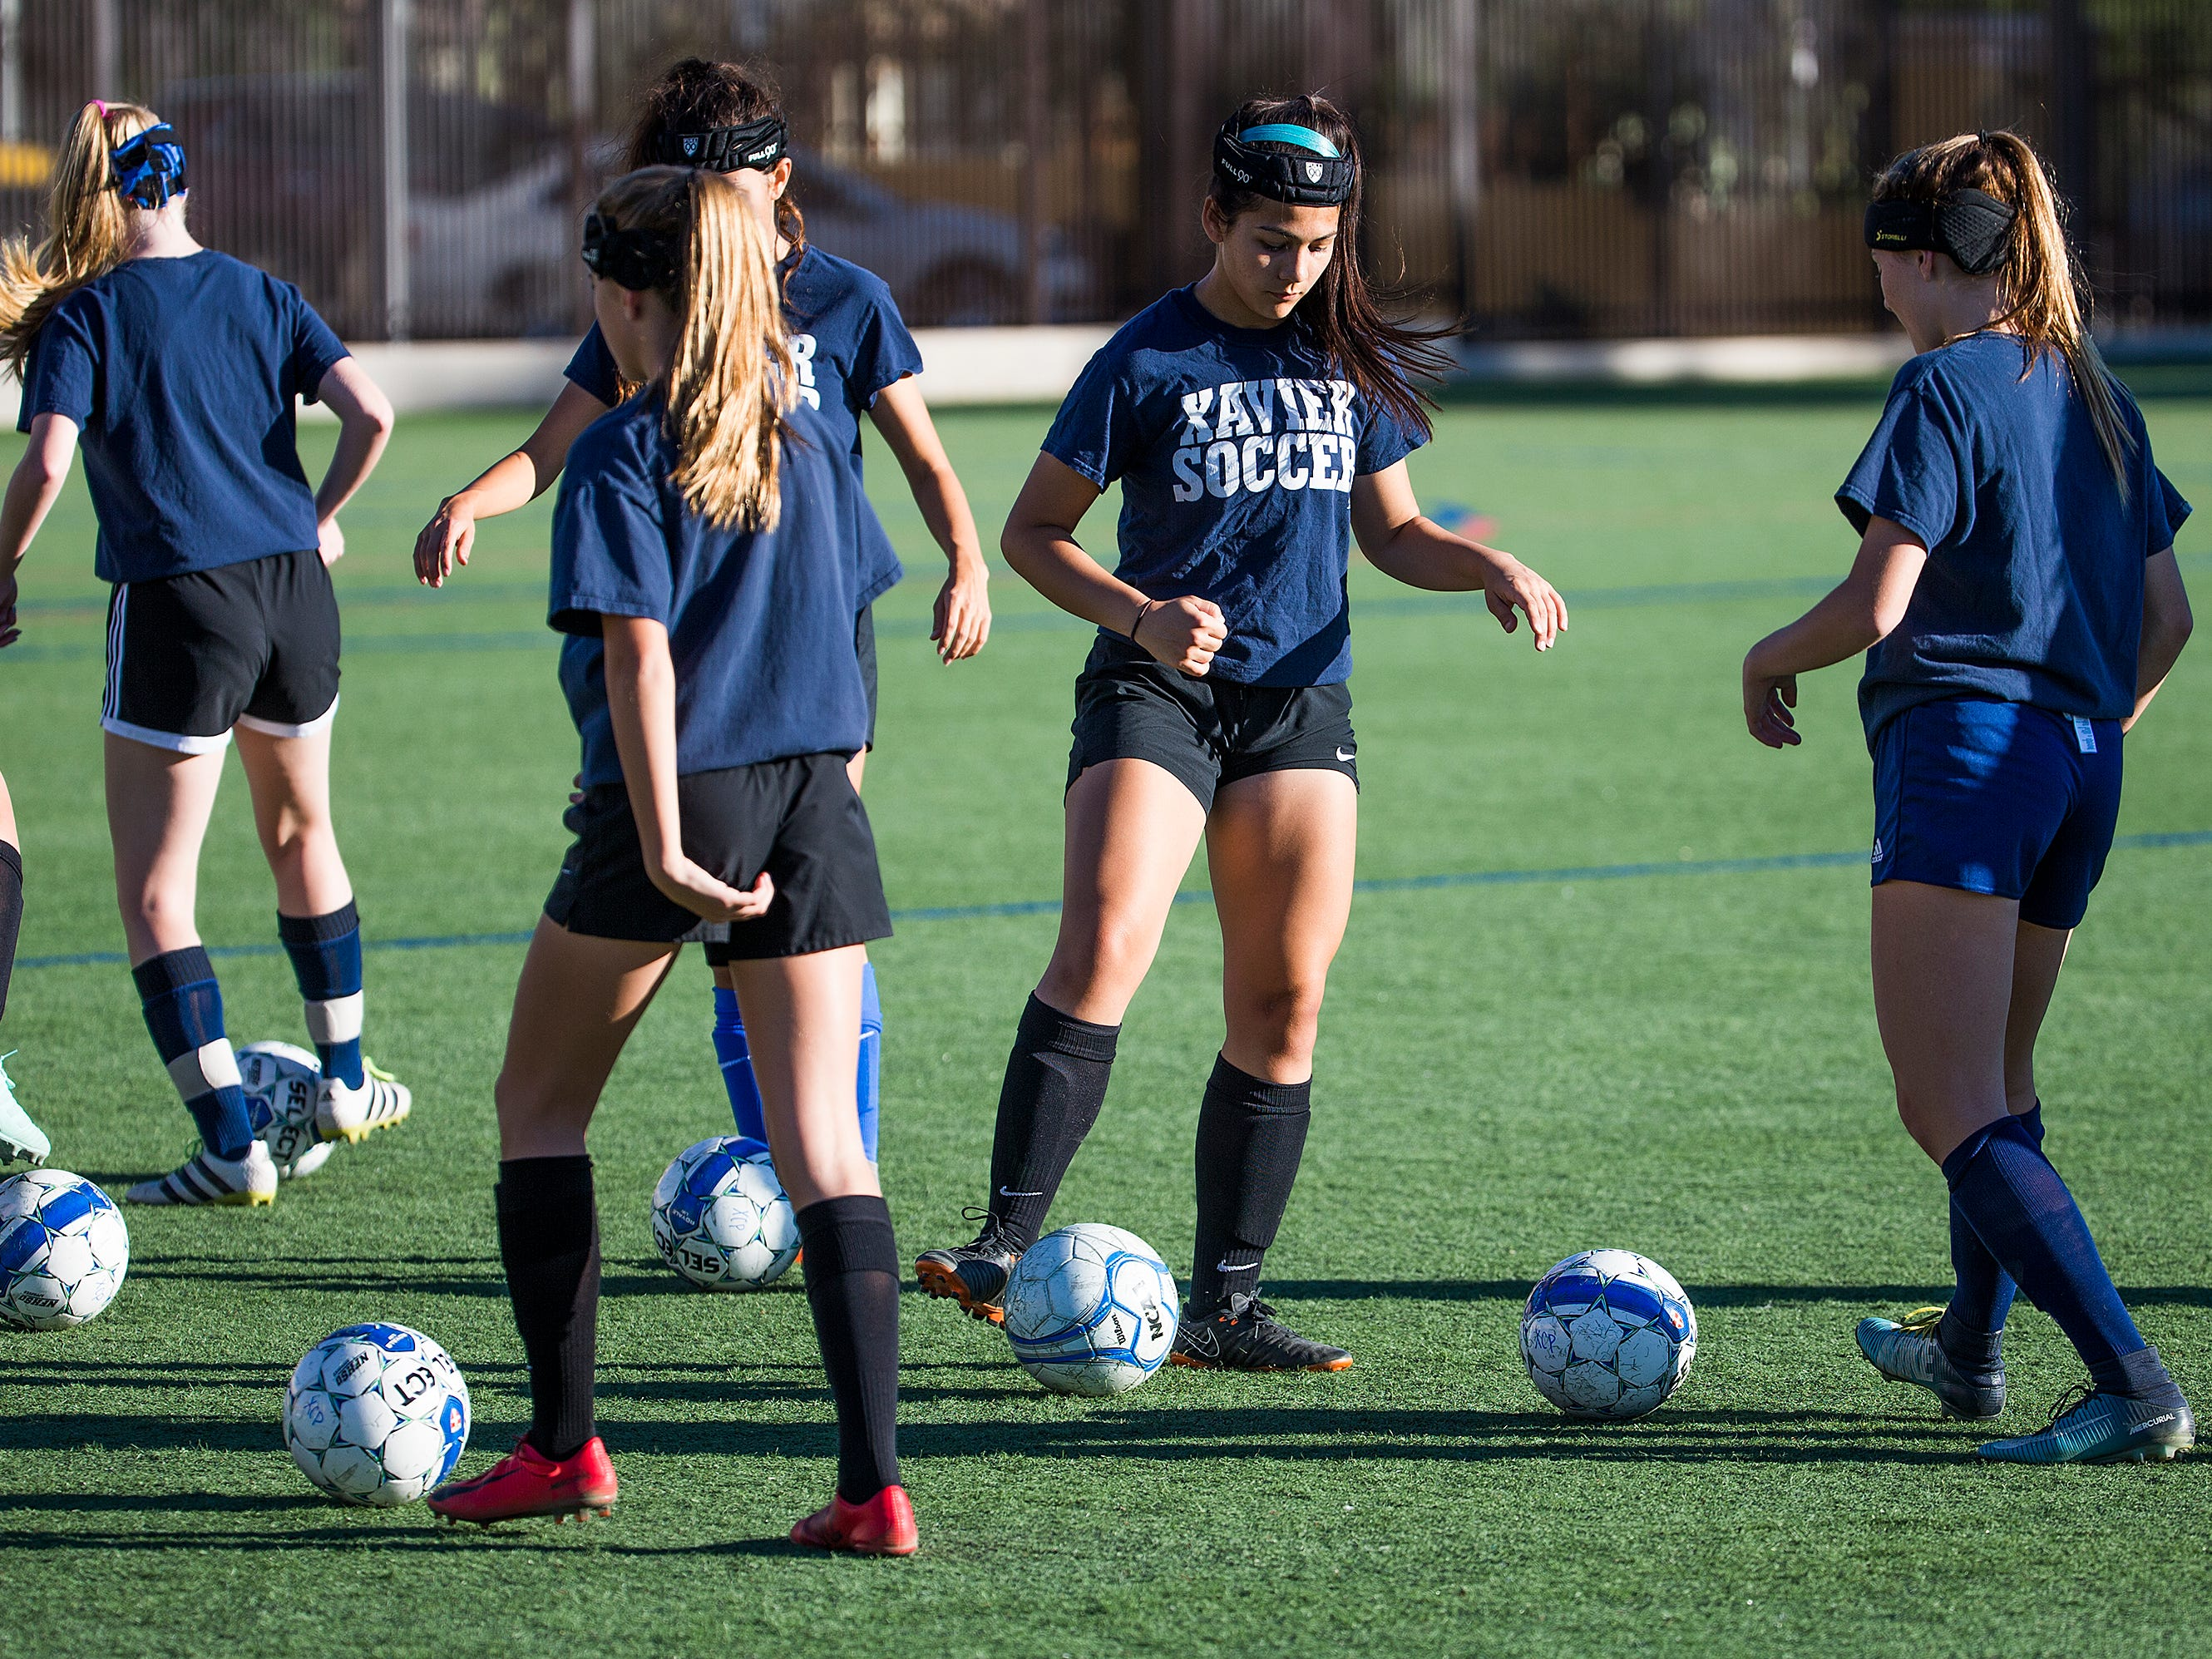 The Xavier College Preparatory soccer team practices at the school, Tuesday, November 13, 2018.